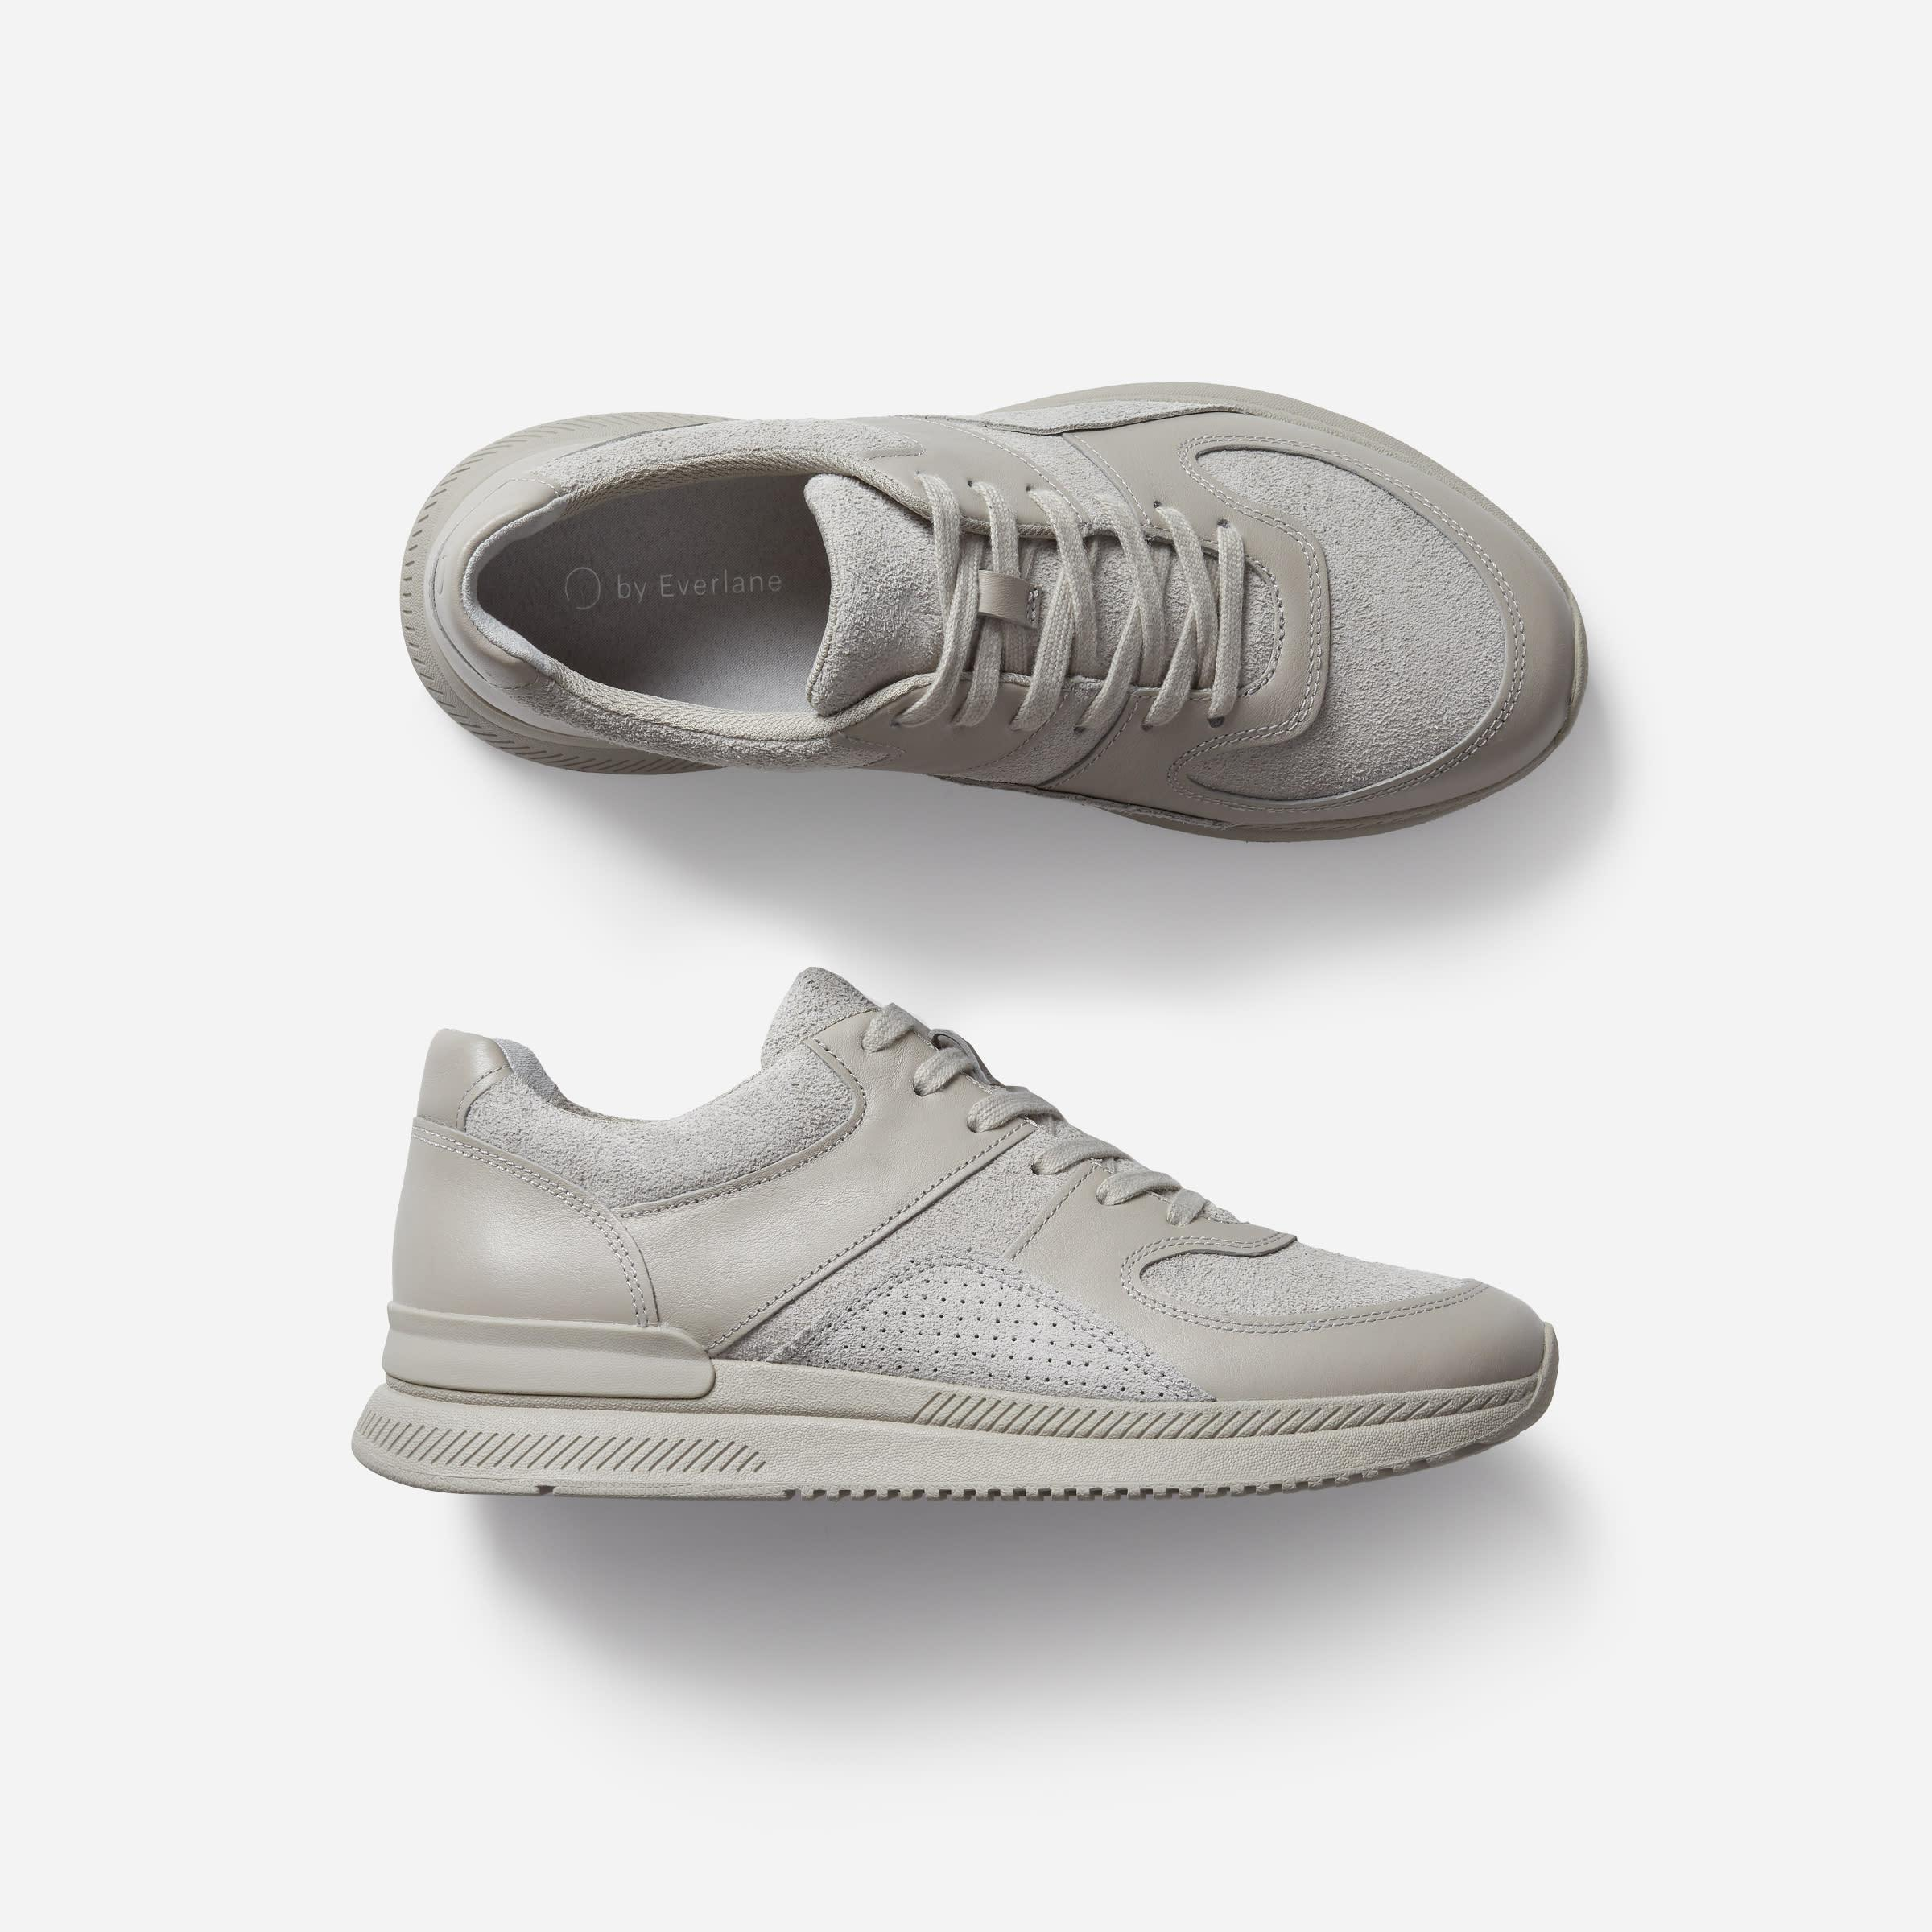 The Trainer 7